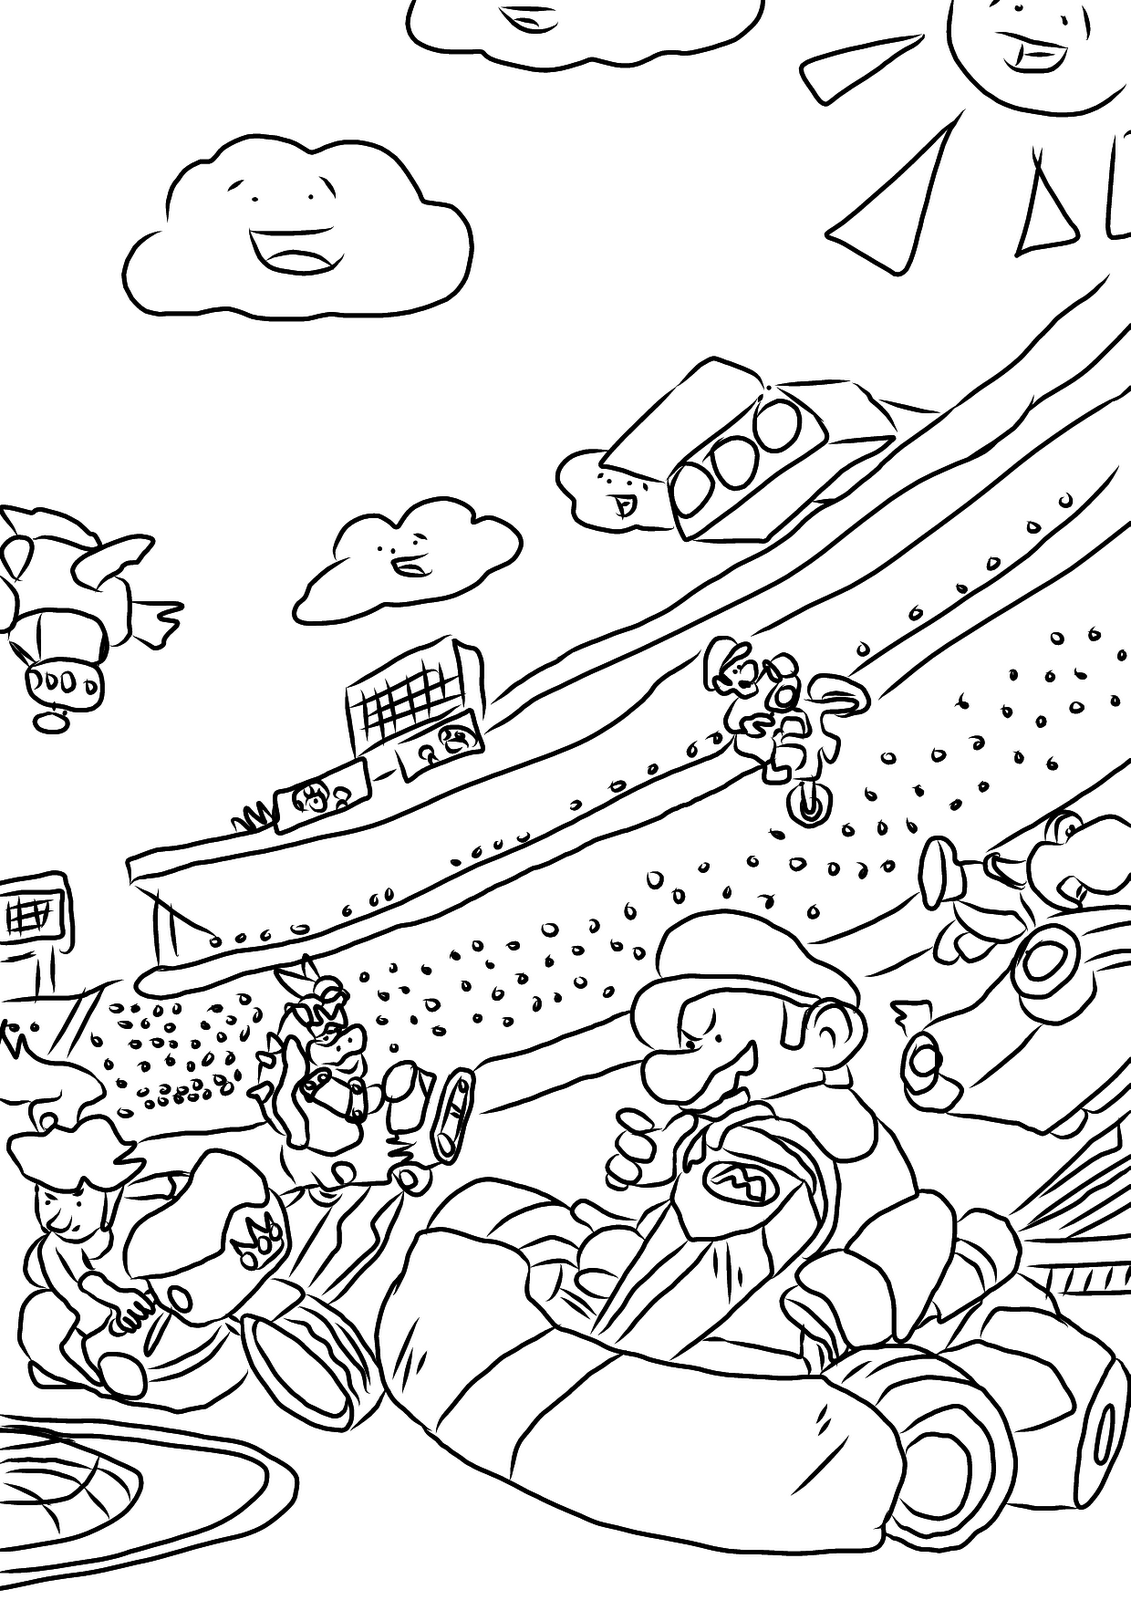 Favour In Fun Mario Kart Colouring Pages